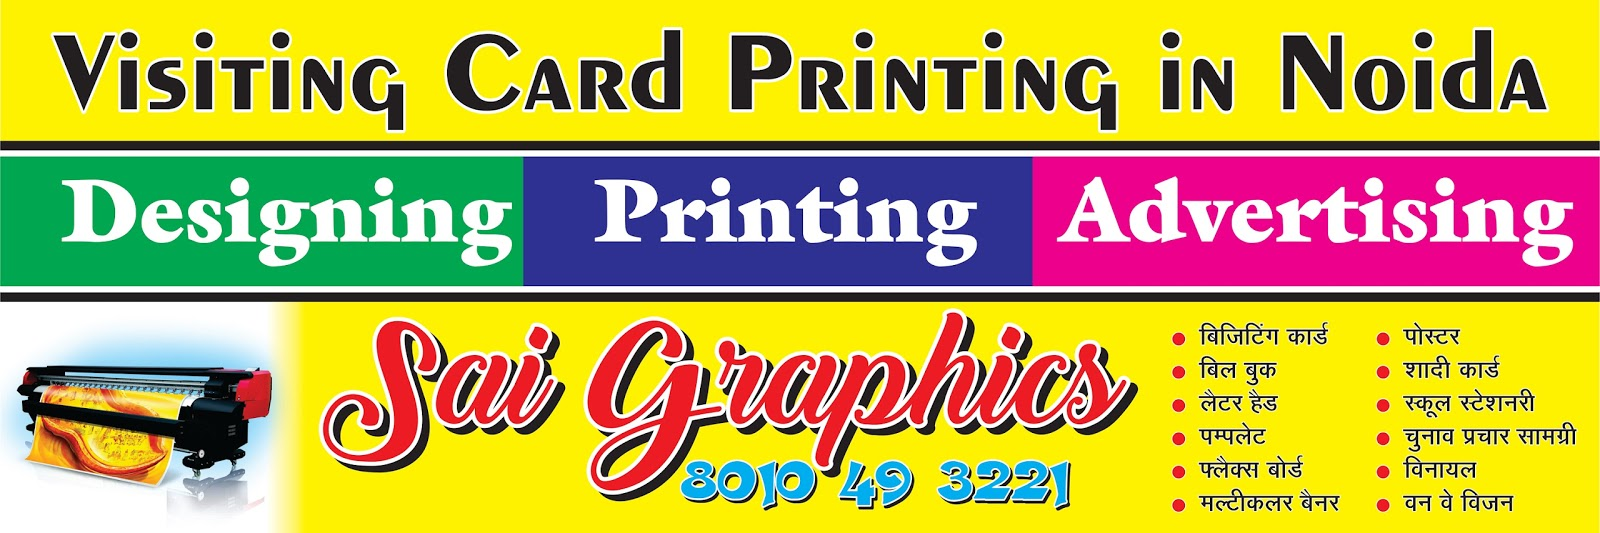 Sai Graphics Noida: Visiting Card Printing in Noida & Visiting Card ...